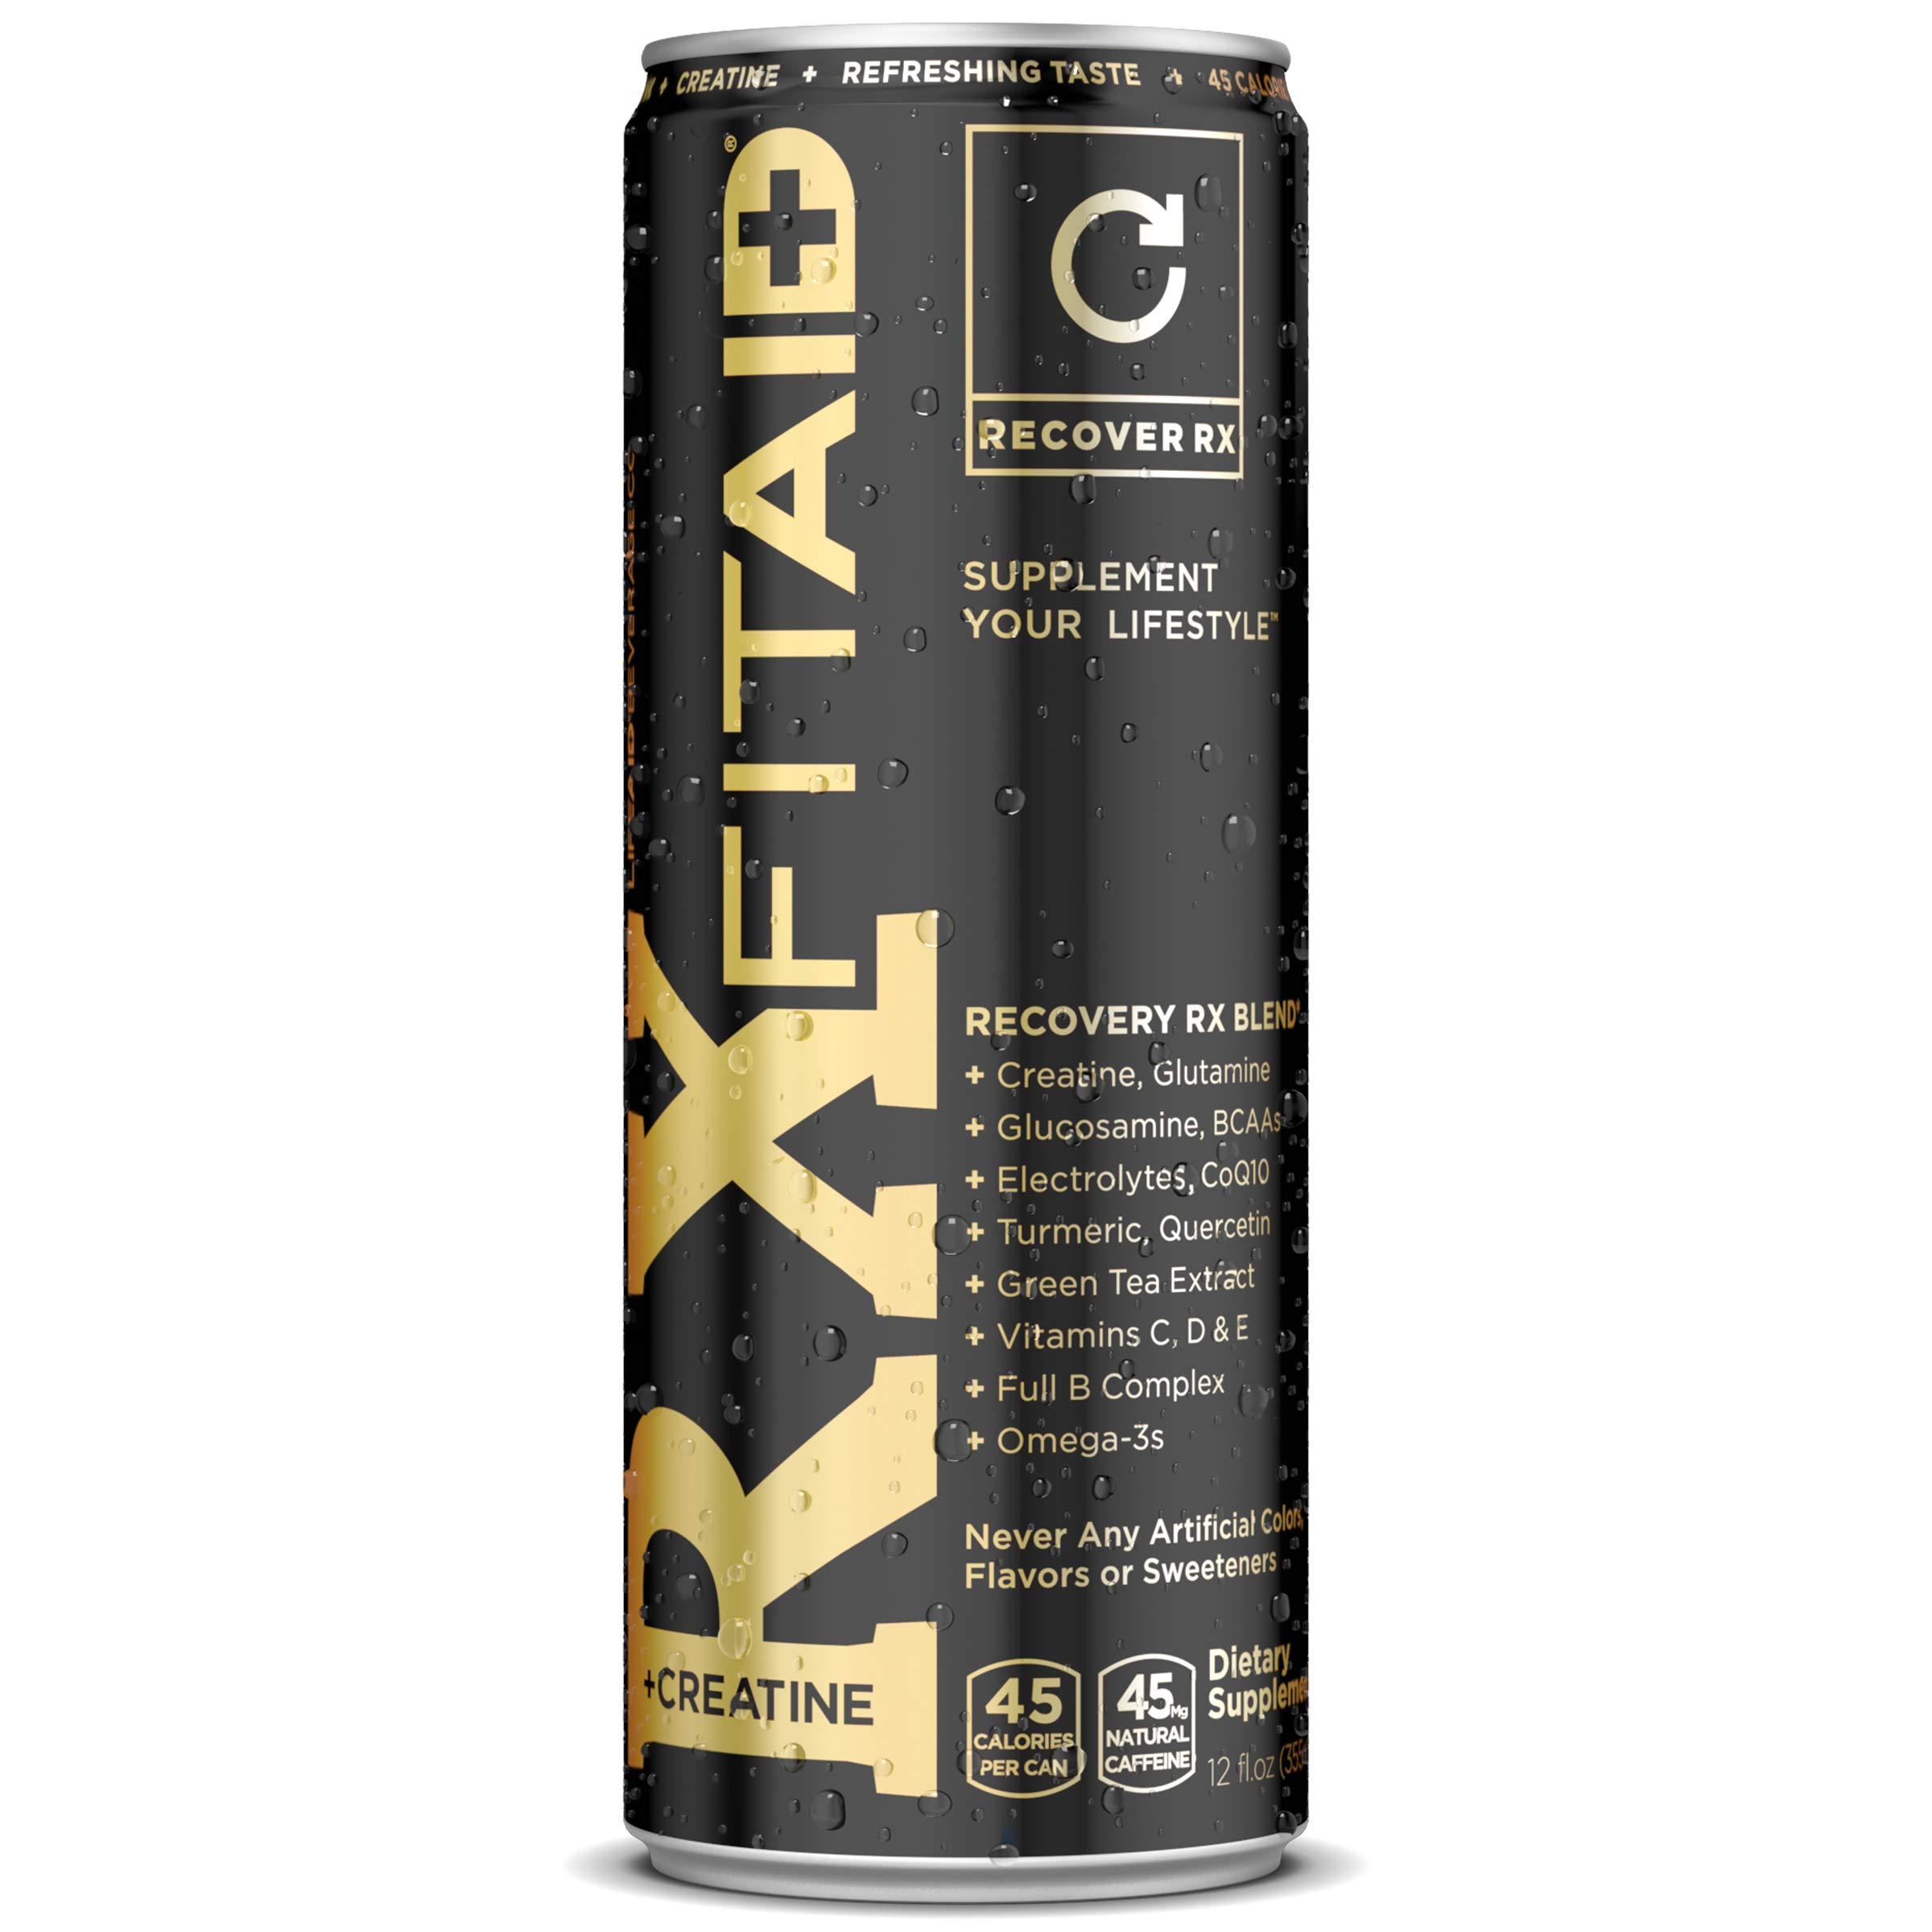 FITAID RX Recovery Blend + Creatine | Contains BCAAs, Glucosamine, Omega-3s, Green Tea | 100% Clean, Paleo Friendly, 12 Fl Oz (Pack of 12)